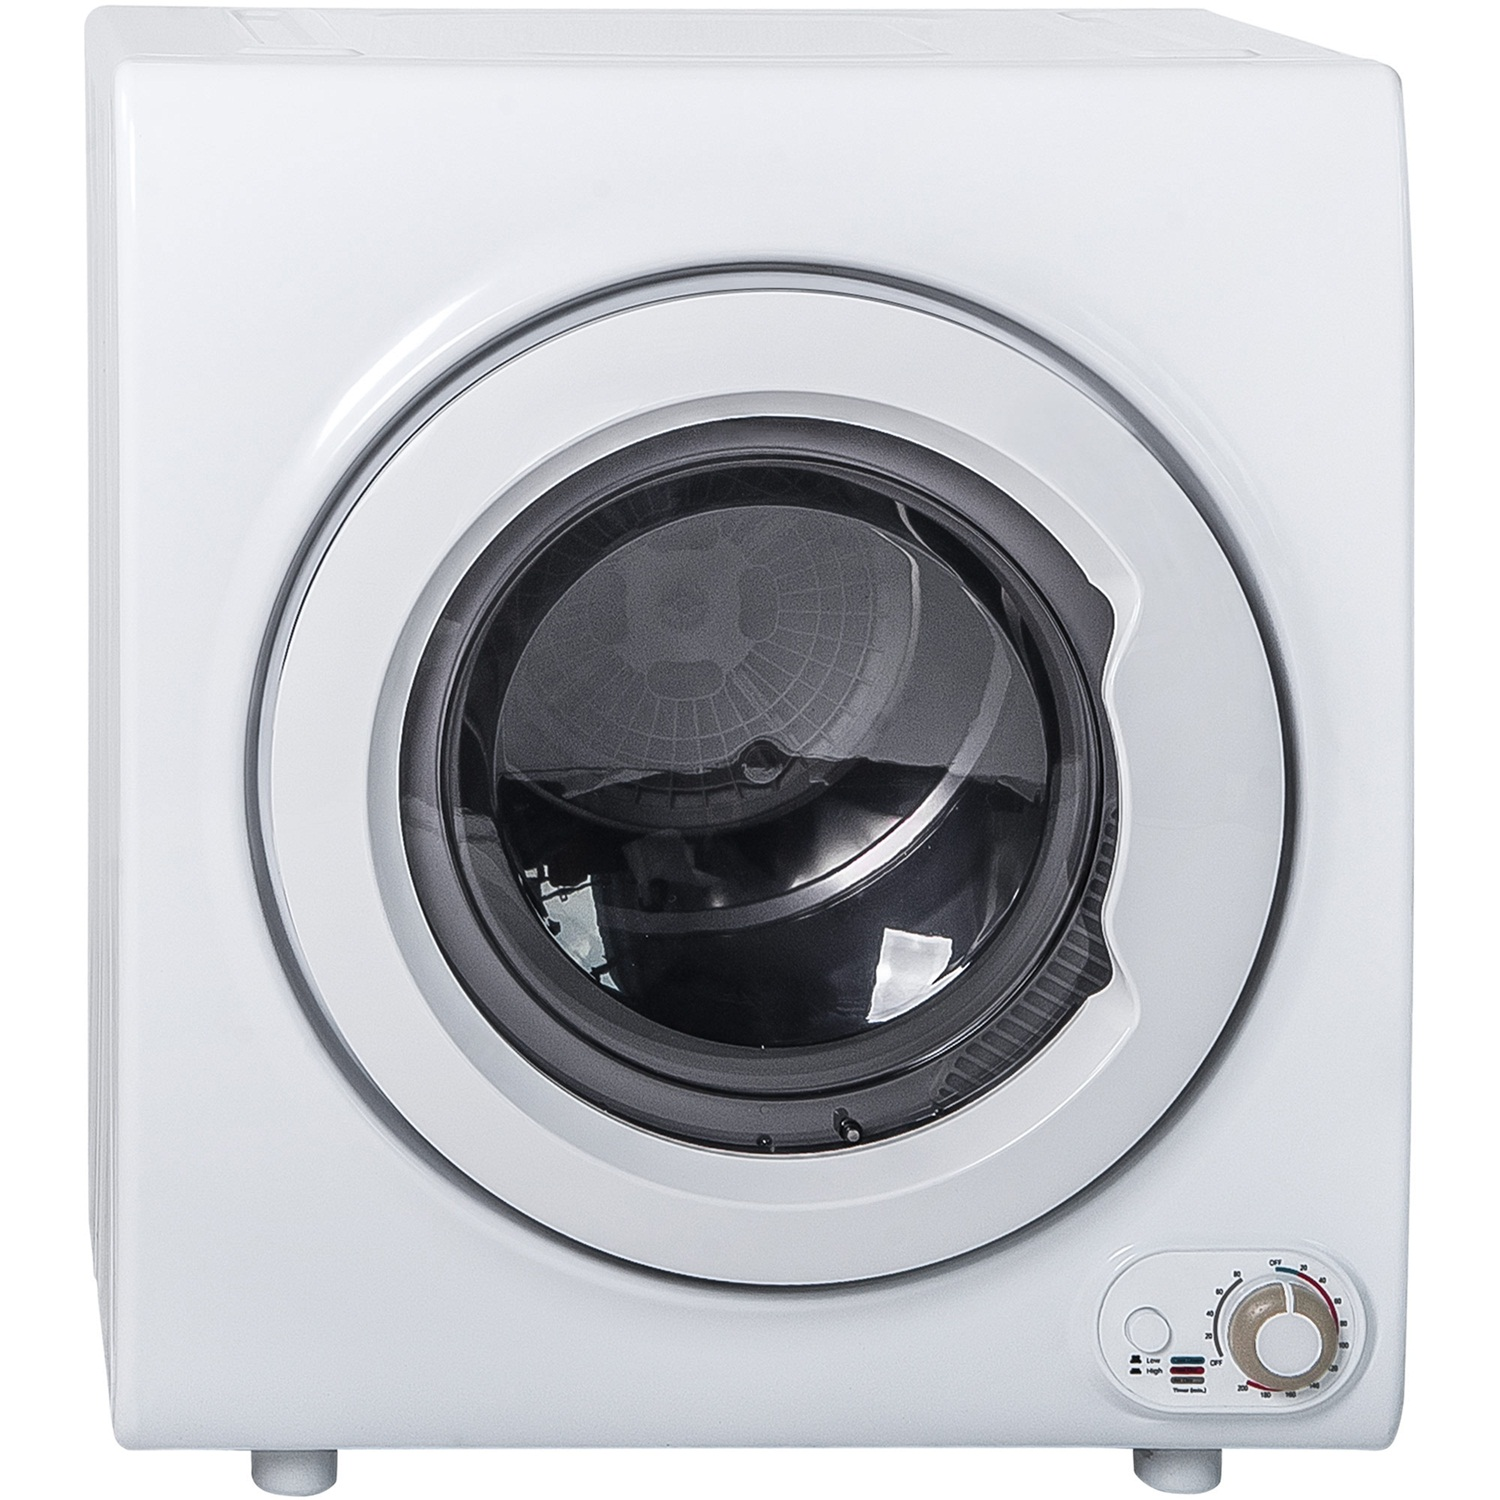 Stainless Steel Tub and 4 Automatic Drying Mode 2.65 Cu.Ft 1400W Compact Laundry Dryer with Sensor System 110V /& 120V AICOOK Clothes Dryer 9 lbs Load Portable Dryer for Apartments